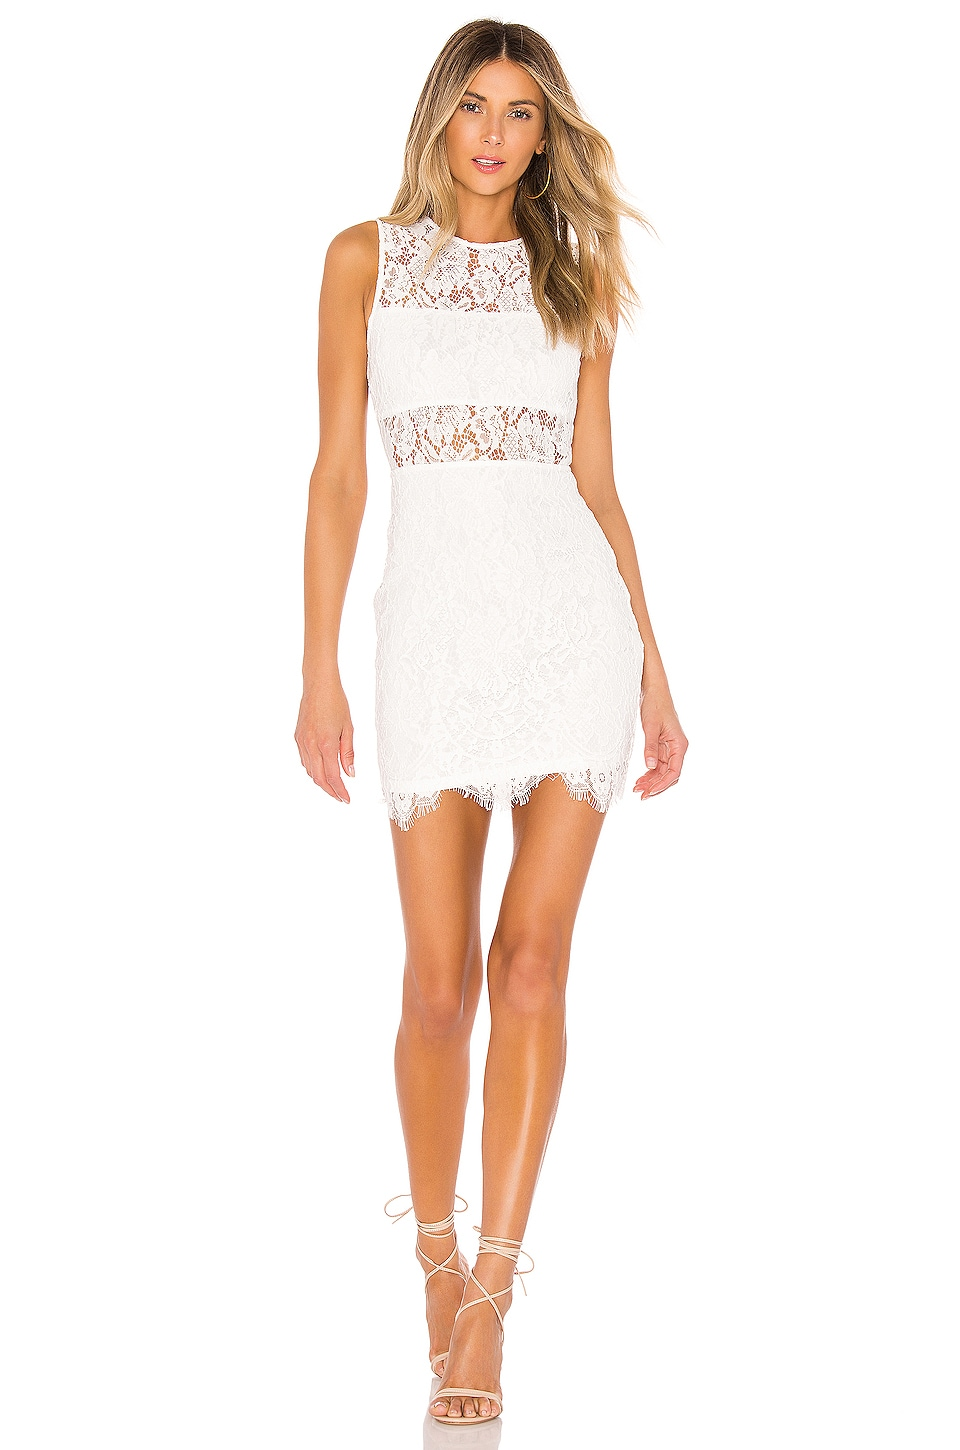 superdown Suri Sleeveless Mini Dress in White